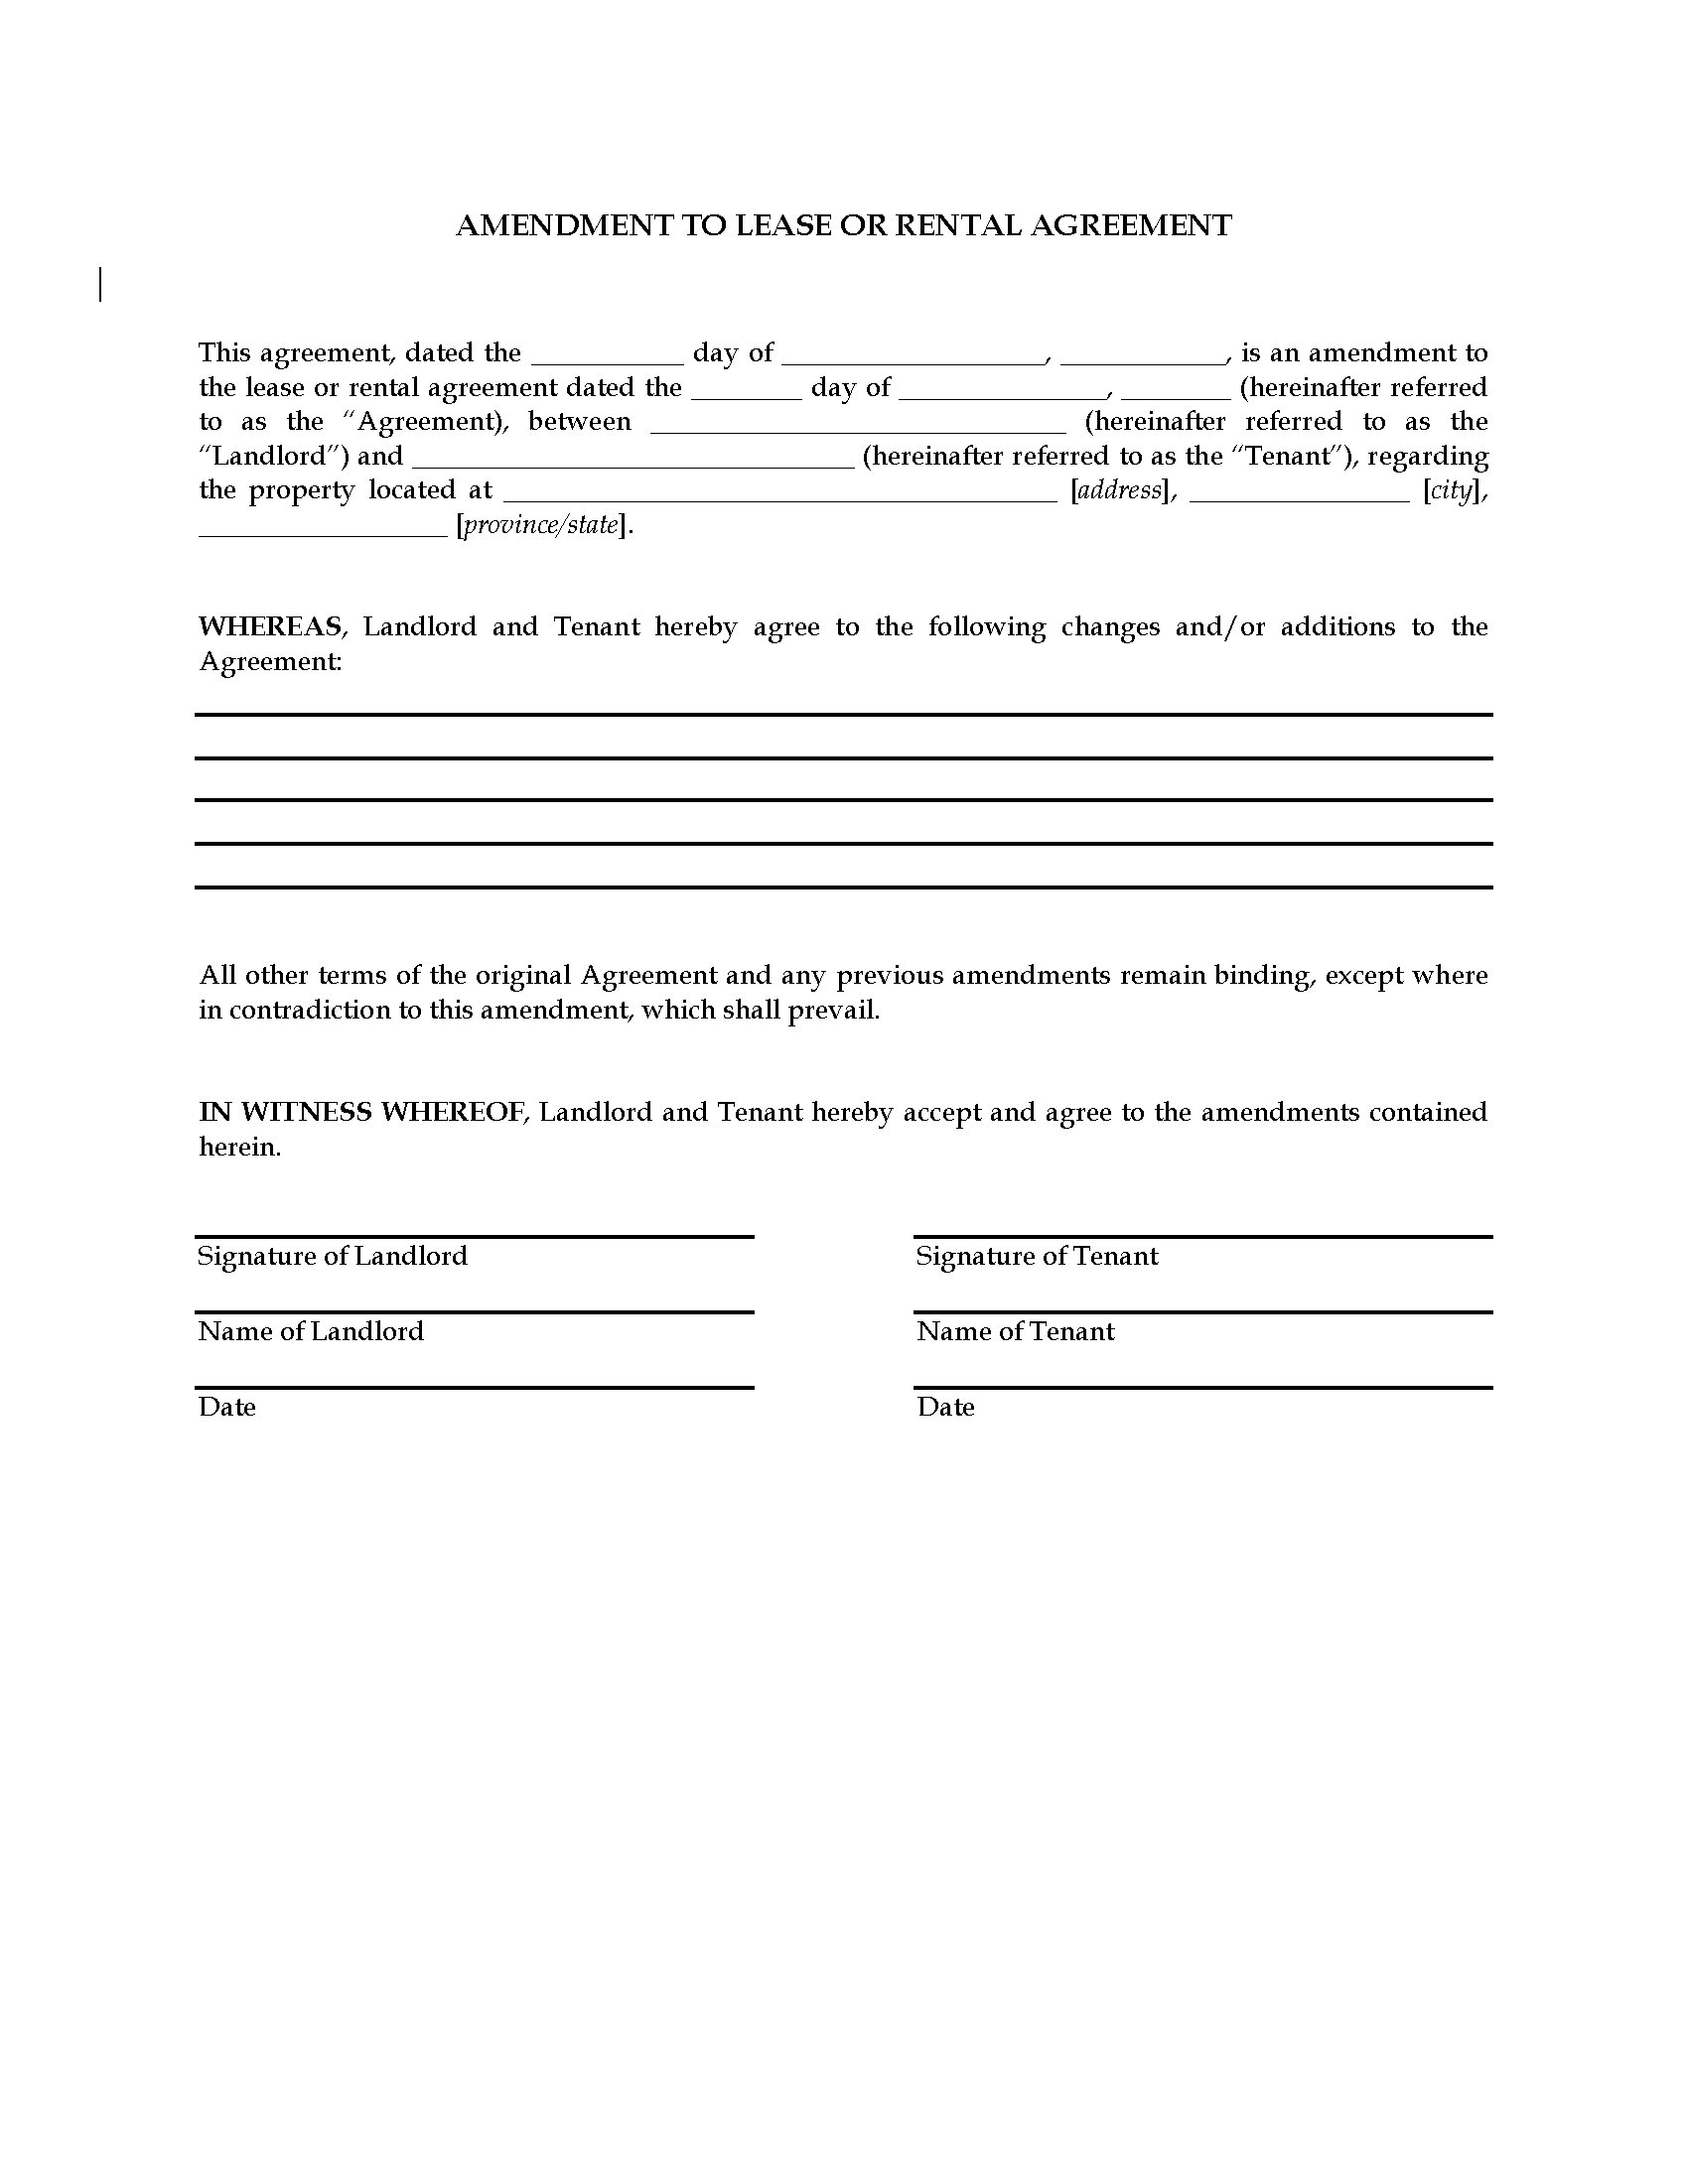 Amendment To Lease Or Rental Agreement Legal Forms And Business 0011895  Preview Amendment To Lease Or